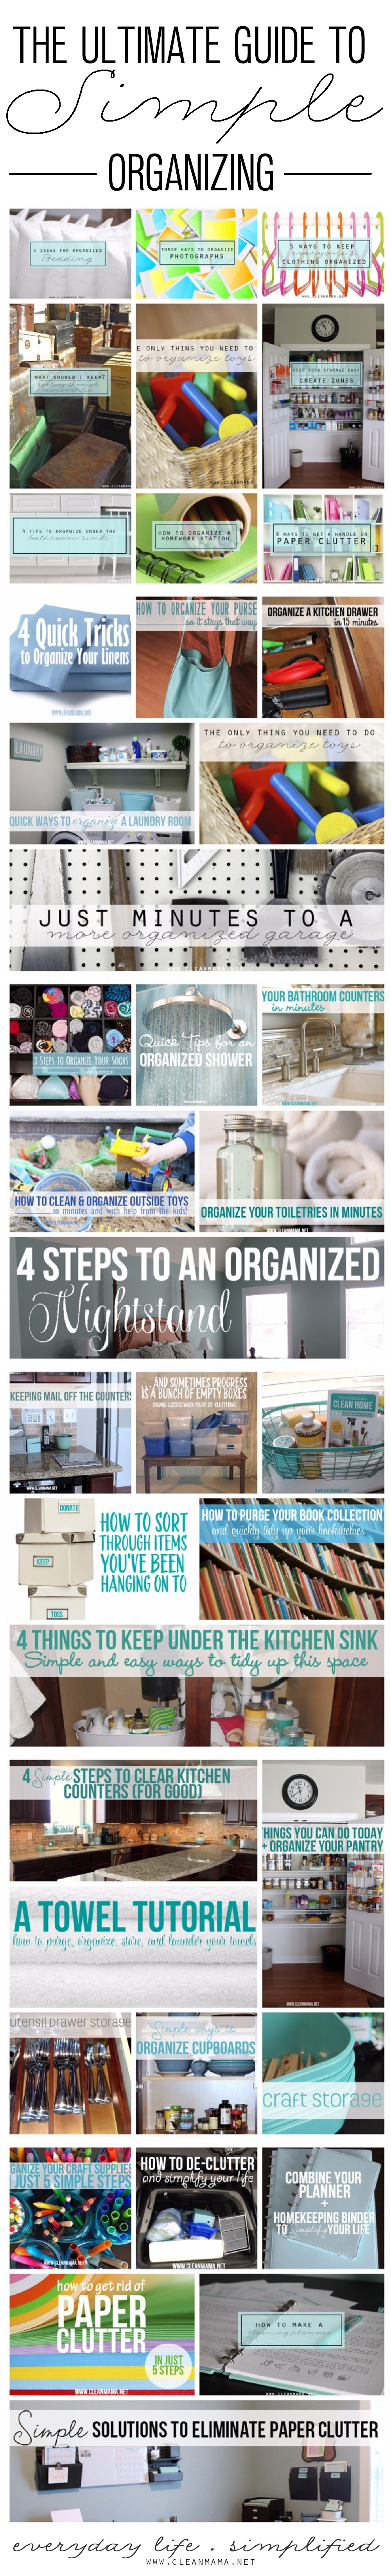 The Ultimate Guide to Simple Organizing